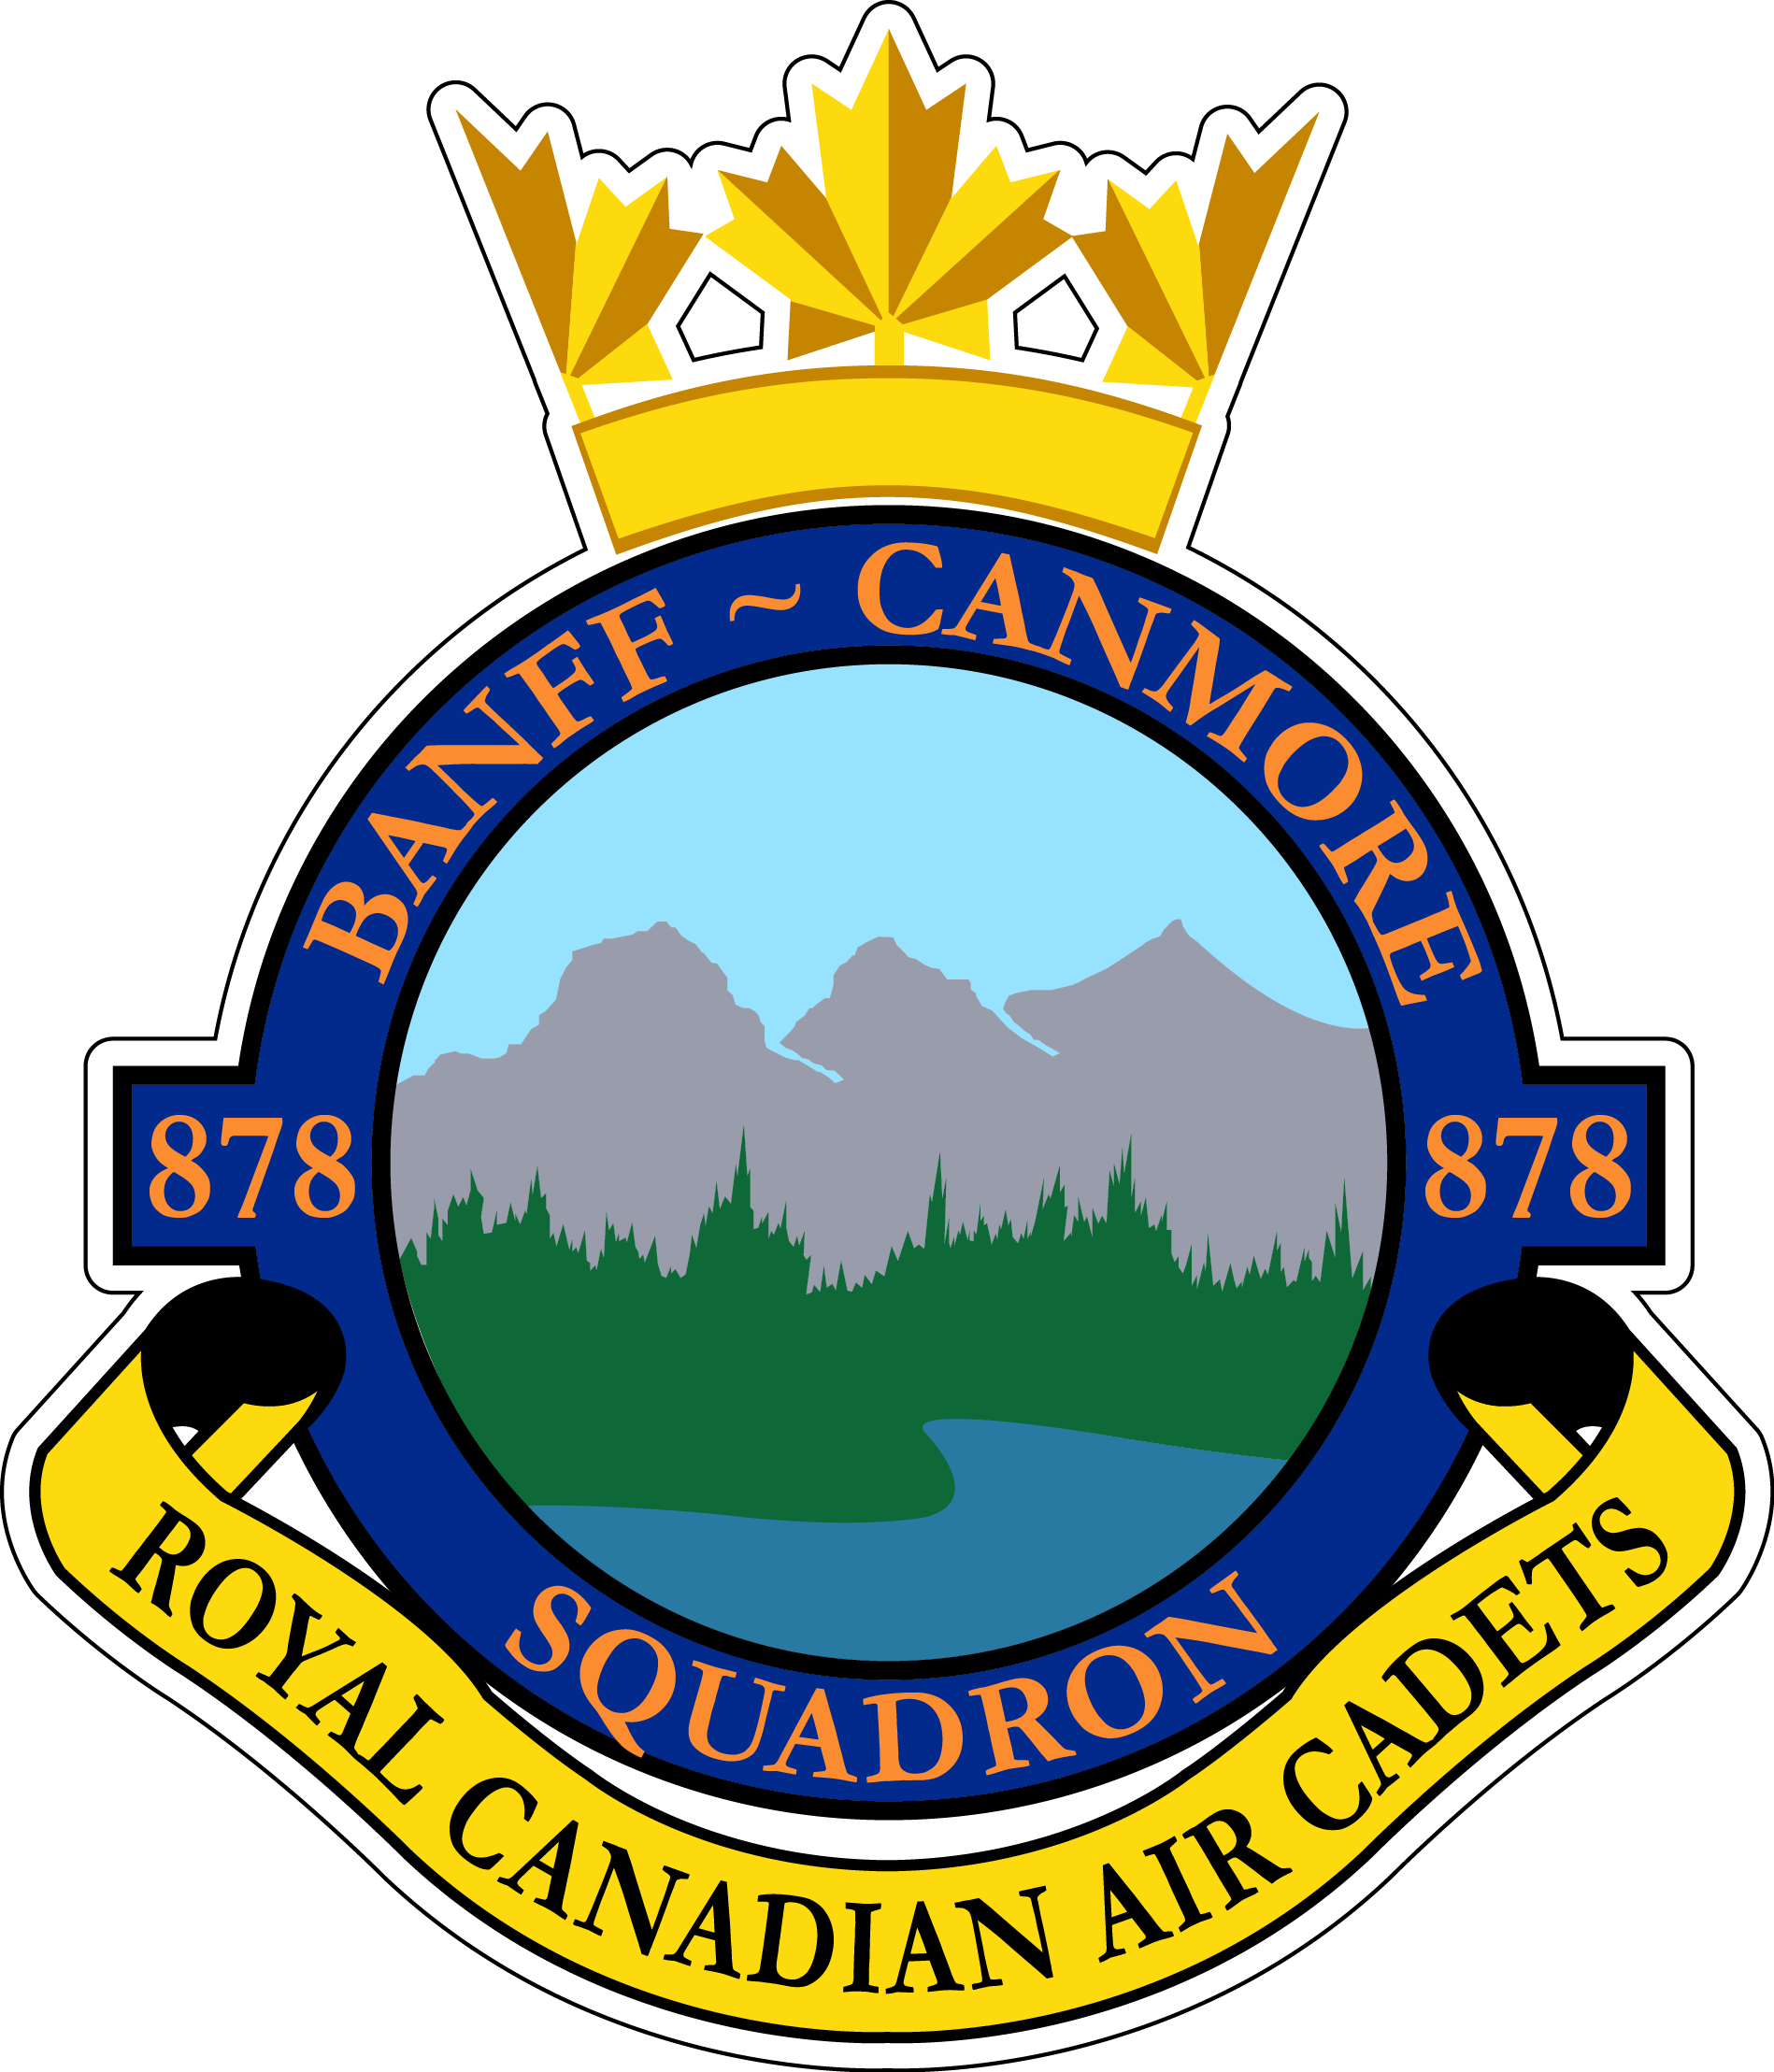 878 Banff/Canmore Squadron